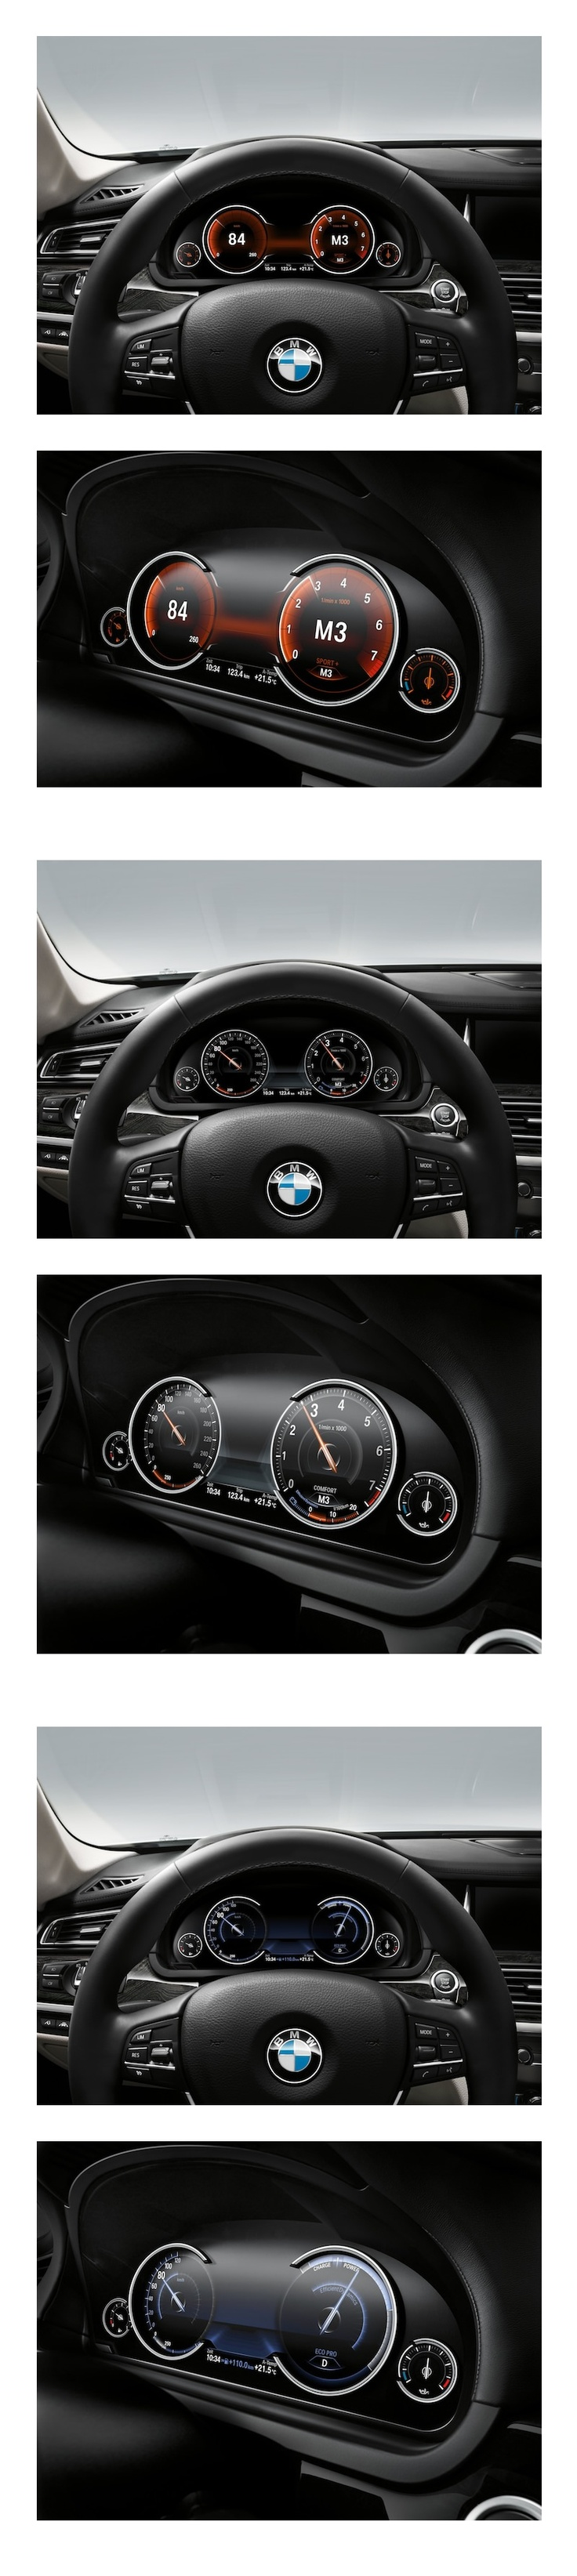 New bmw car finally he chooses bmw over his favorite scorpio car - Amazing Upcoming Ui For The 2013 Bmw 7 Series